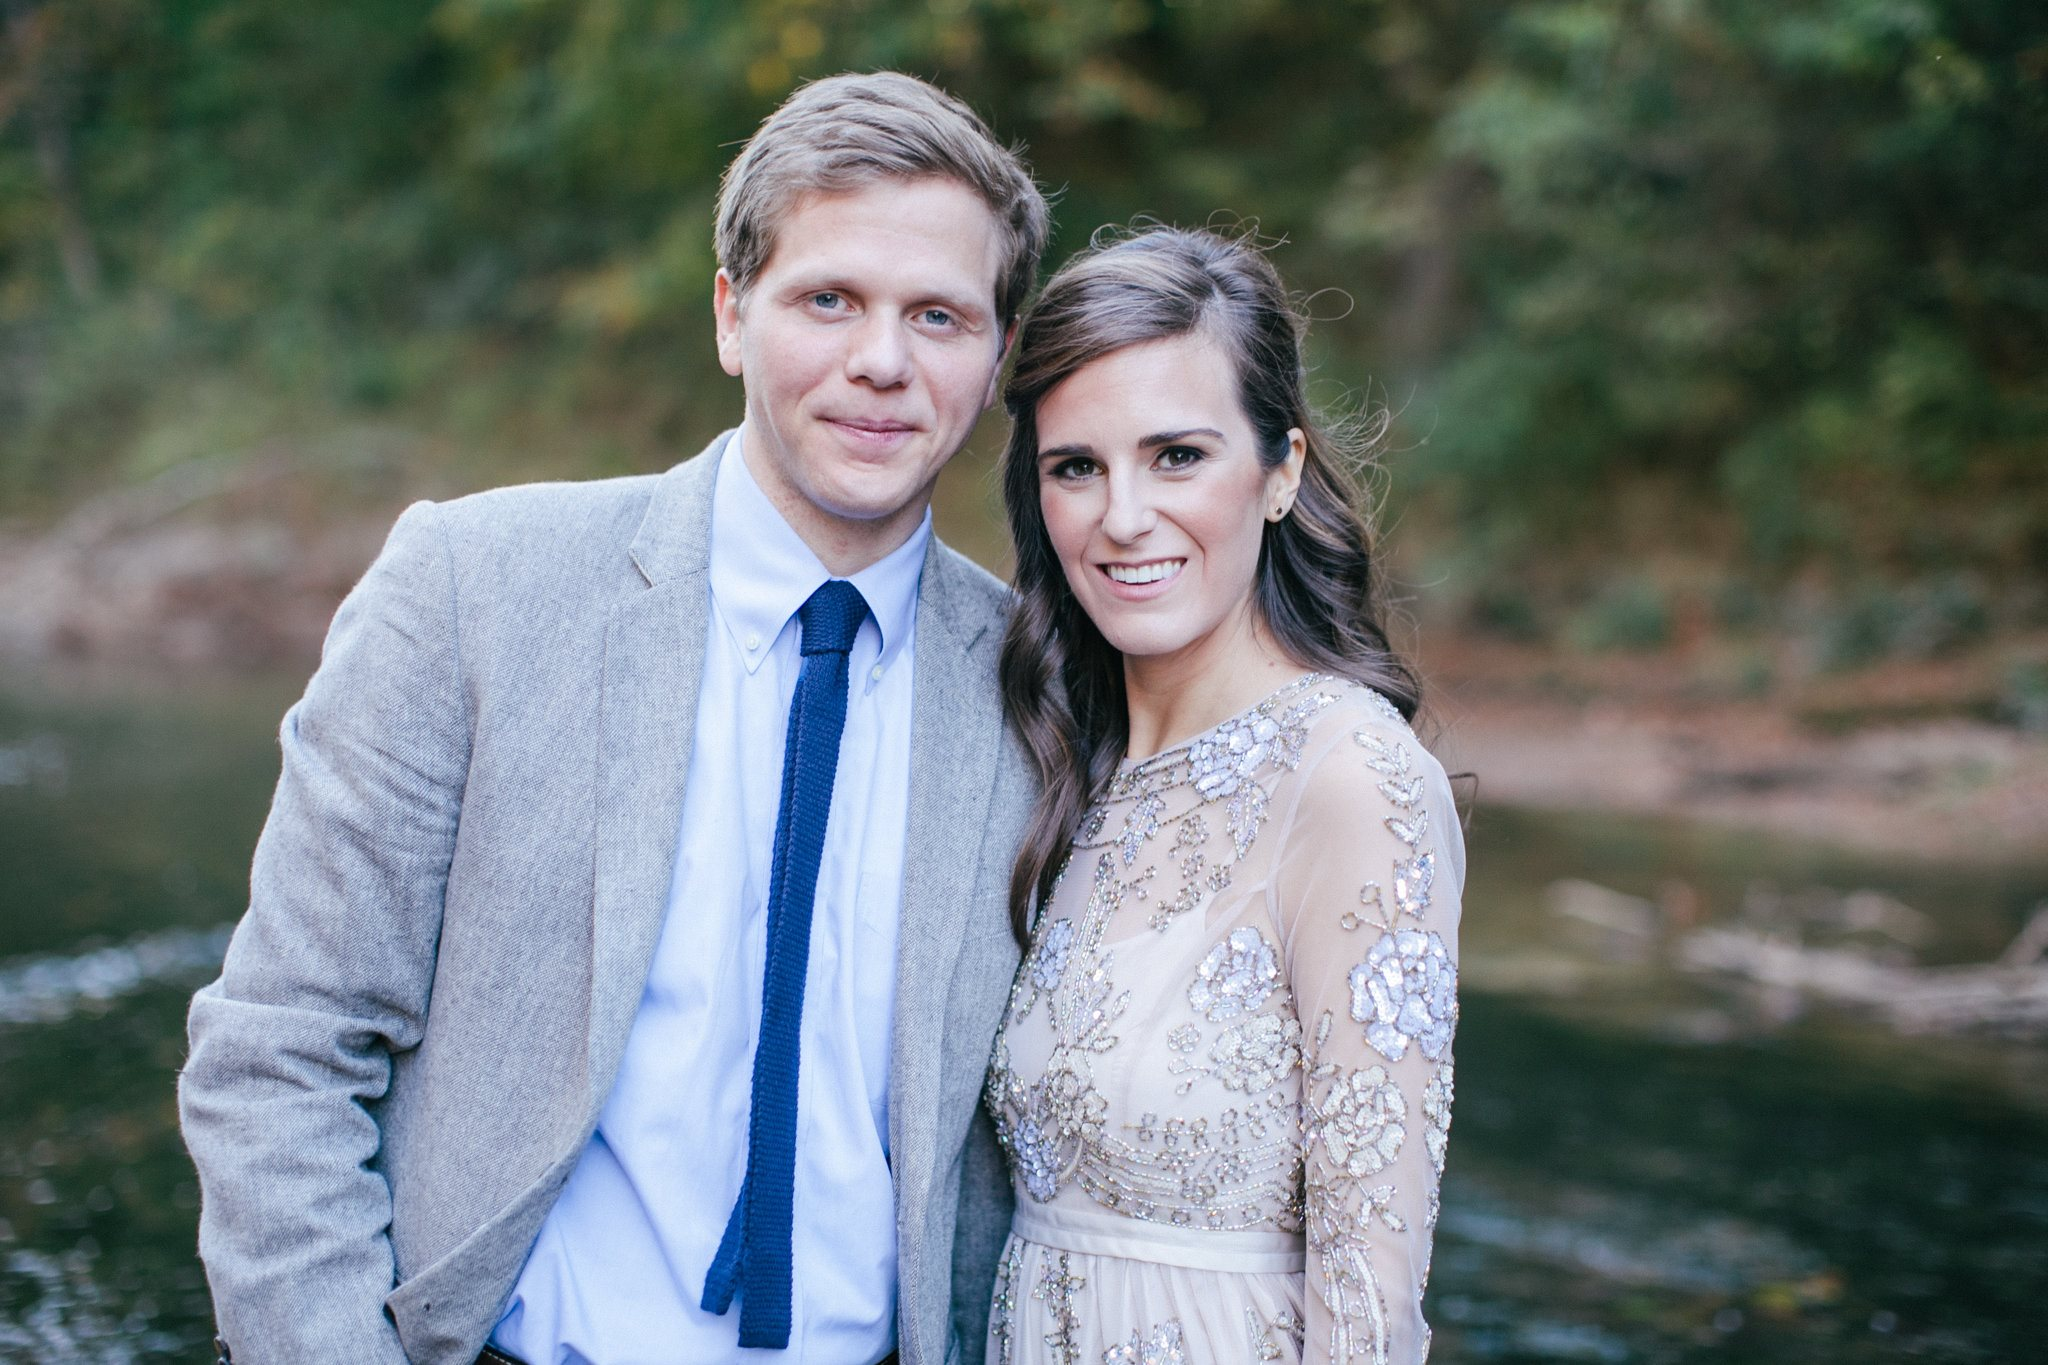 Brittany Kahlstorf & Joel Rogers-2